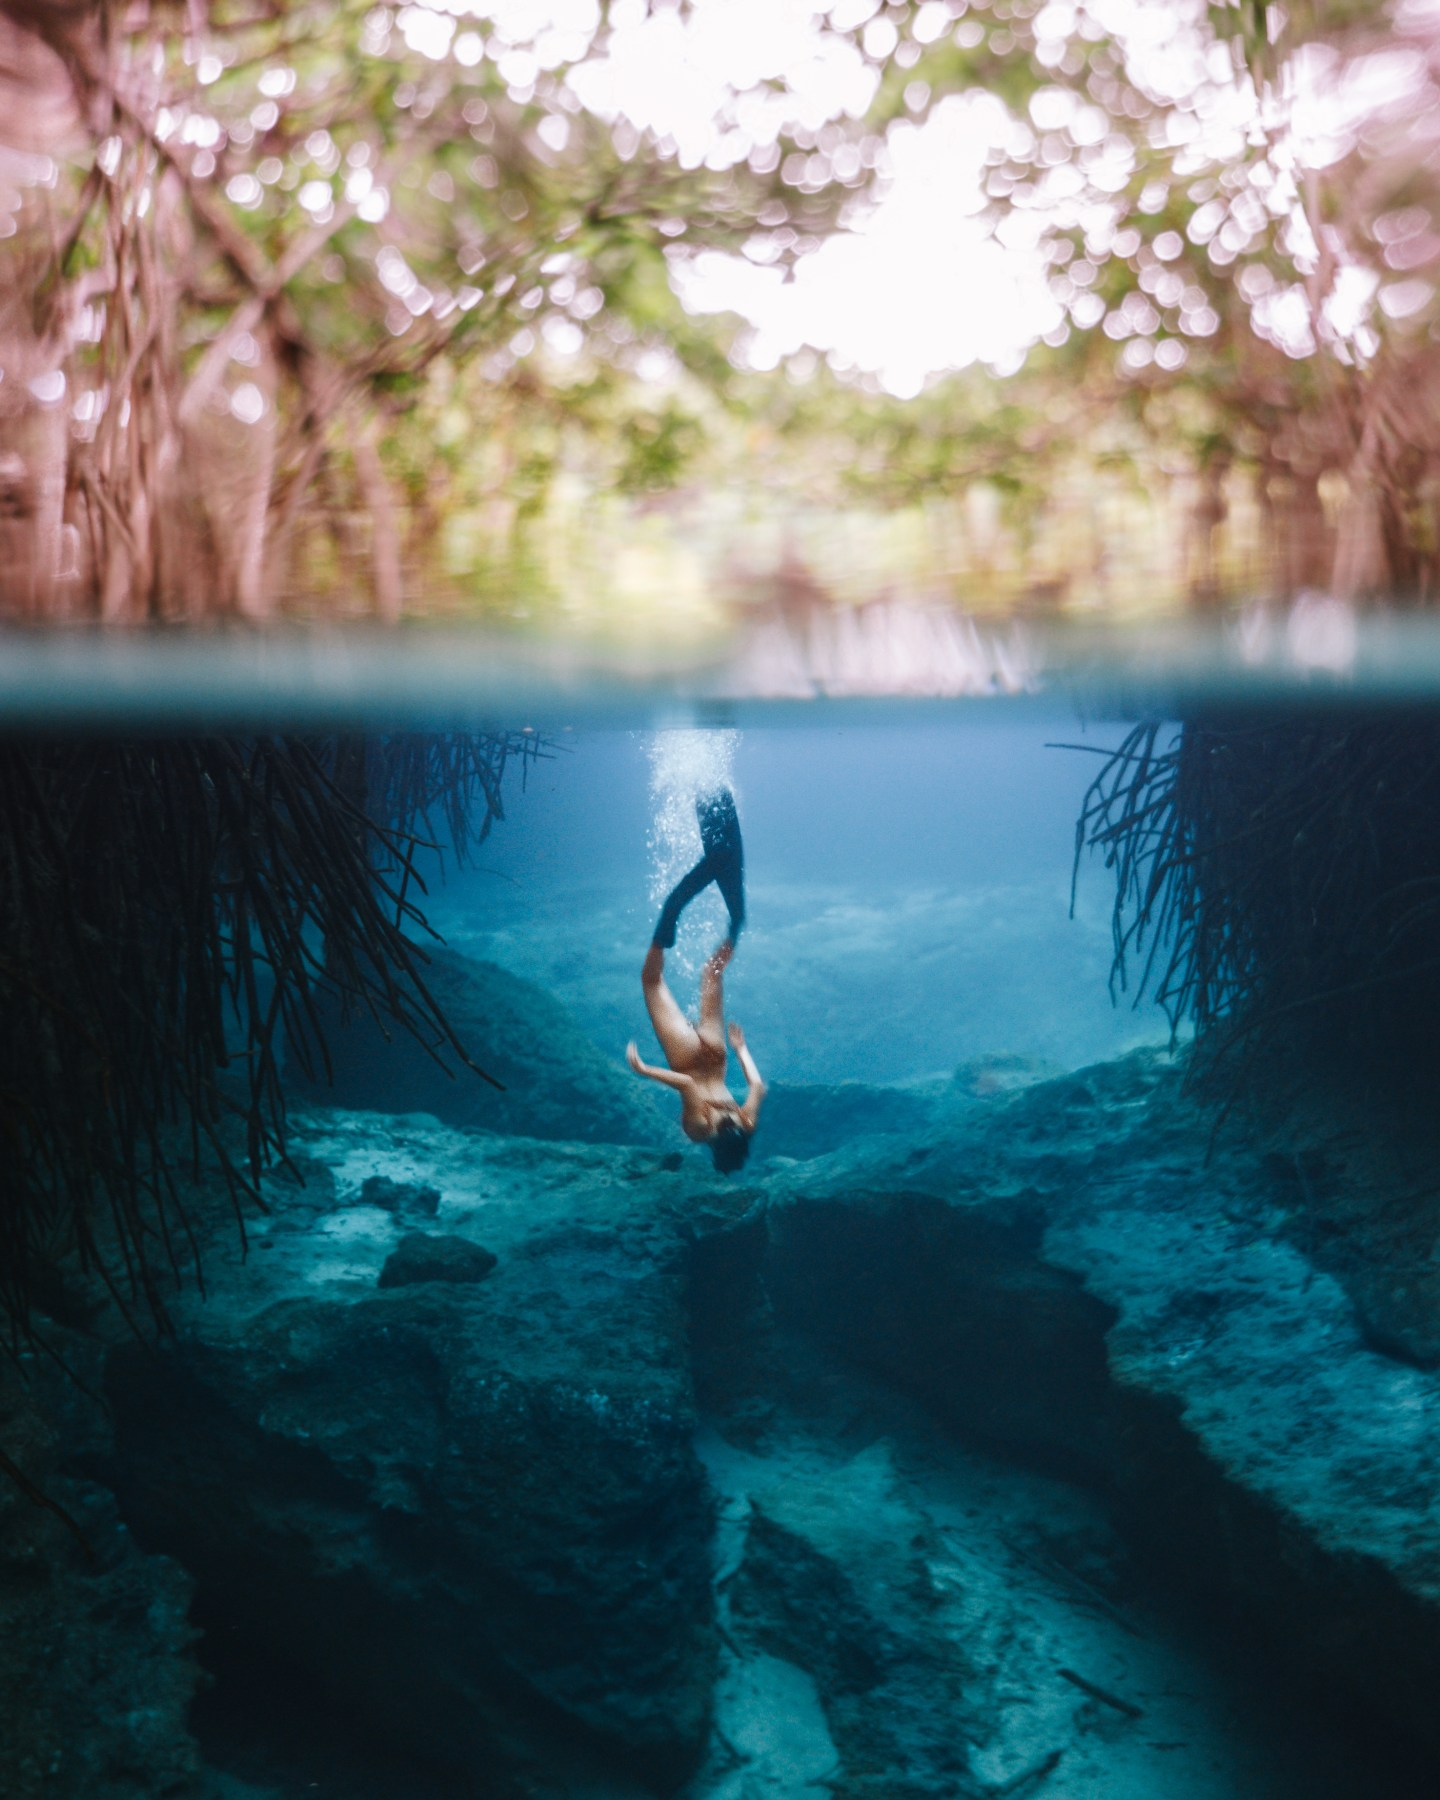 Casa Cenote Tulum. This guide gives you tips for all of the best cenotes in Tulum and the best cenotes near Tulum including what to pack for the best Tulum cenotes and more. If you are looking for day trips from Tulum, check out the best cenotes in Quintana Roo and best cenotes in Yucatan for ideas! | Tulum cenotes photography | cenotes Mexico tulum | cenotes tulum riviera maya | best cenotes in quintana roo | cenotes quintana roo | cenotes in playa del carmen